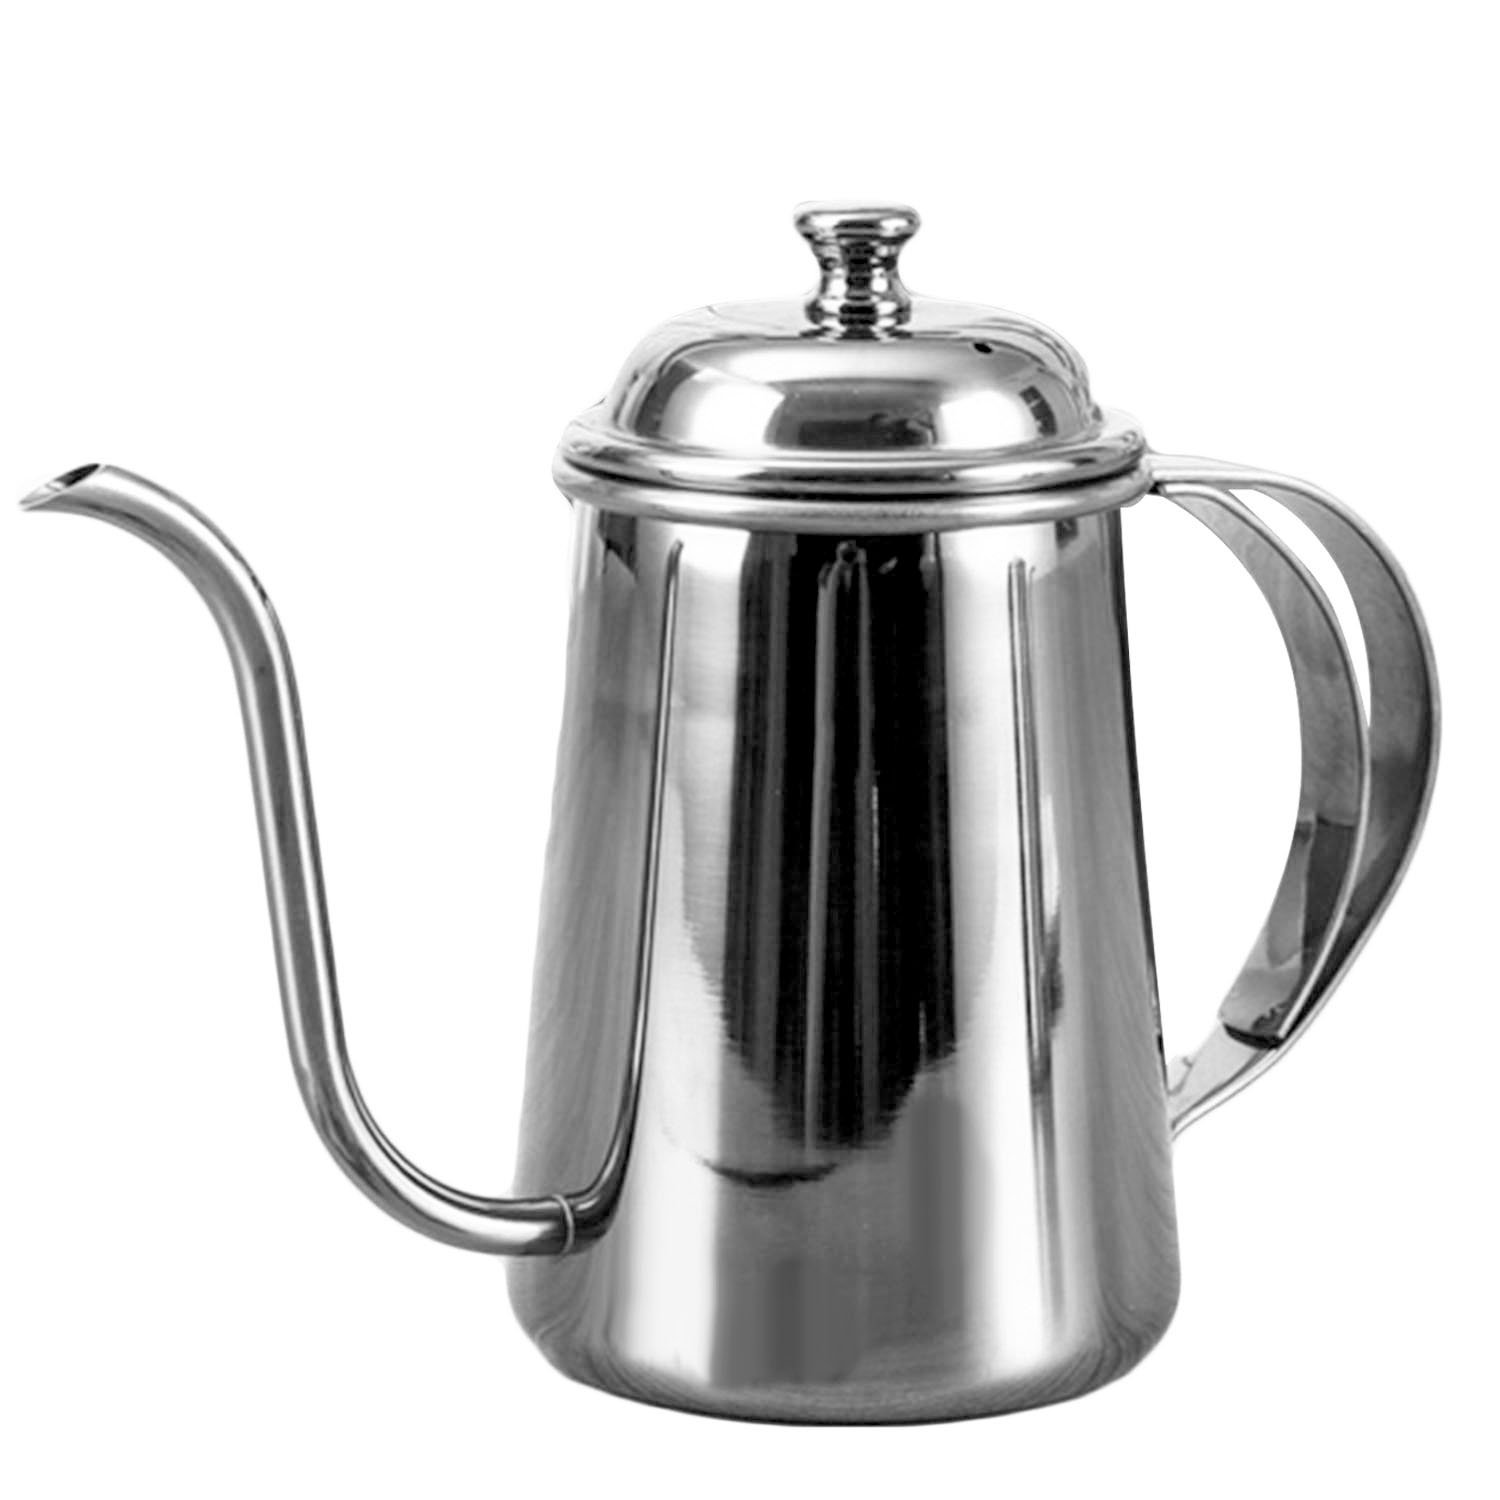 650ml Stylish Elegant Stainless Steel Gooseneck Spout Kettle Long Mouth Drip Coffee Tea Kettle Teapot for Home Office Outdoors Silver